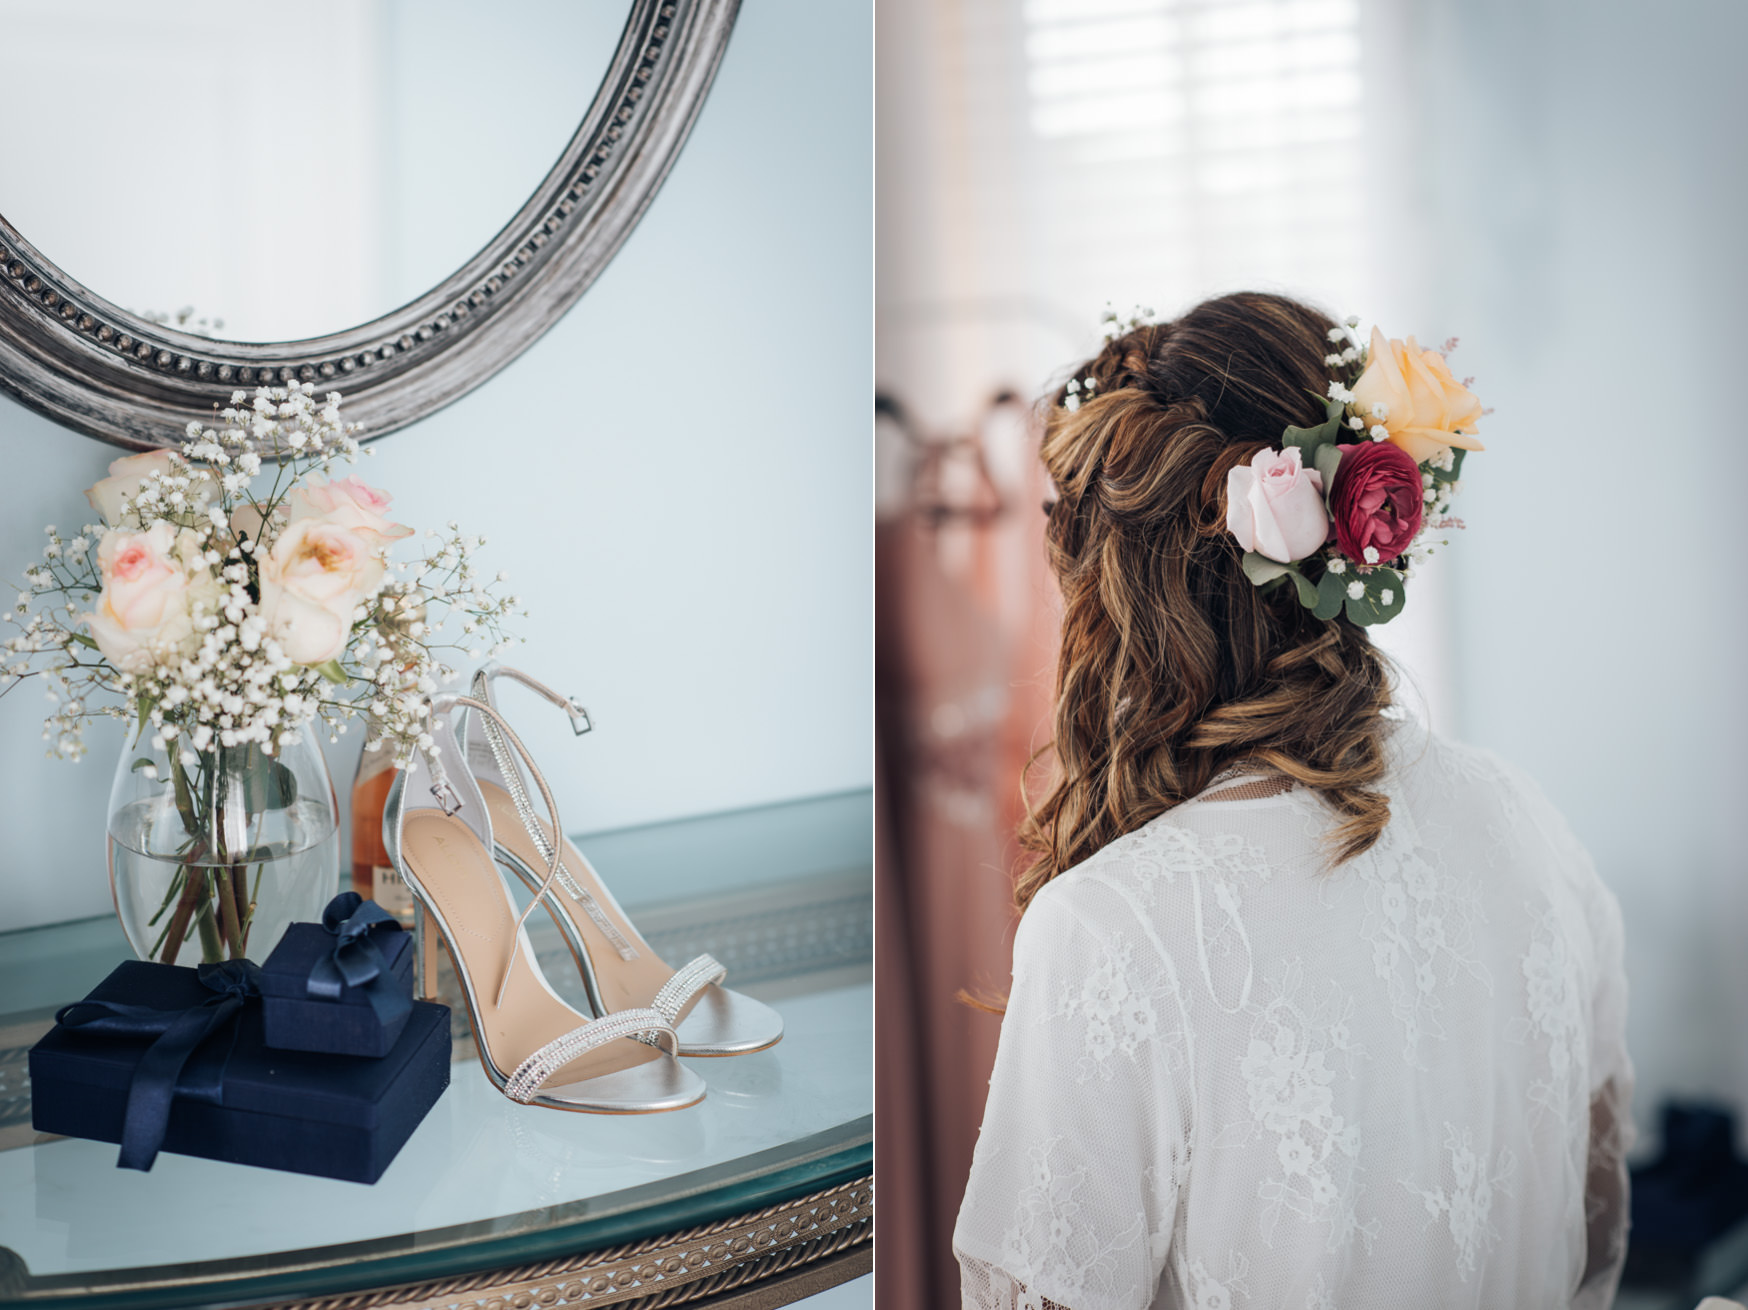 Photo of a bride getting ready in Toronto with details of her shoes, bouquet, flower crowns and jewelries